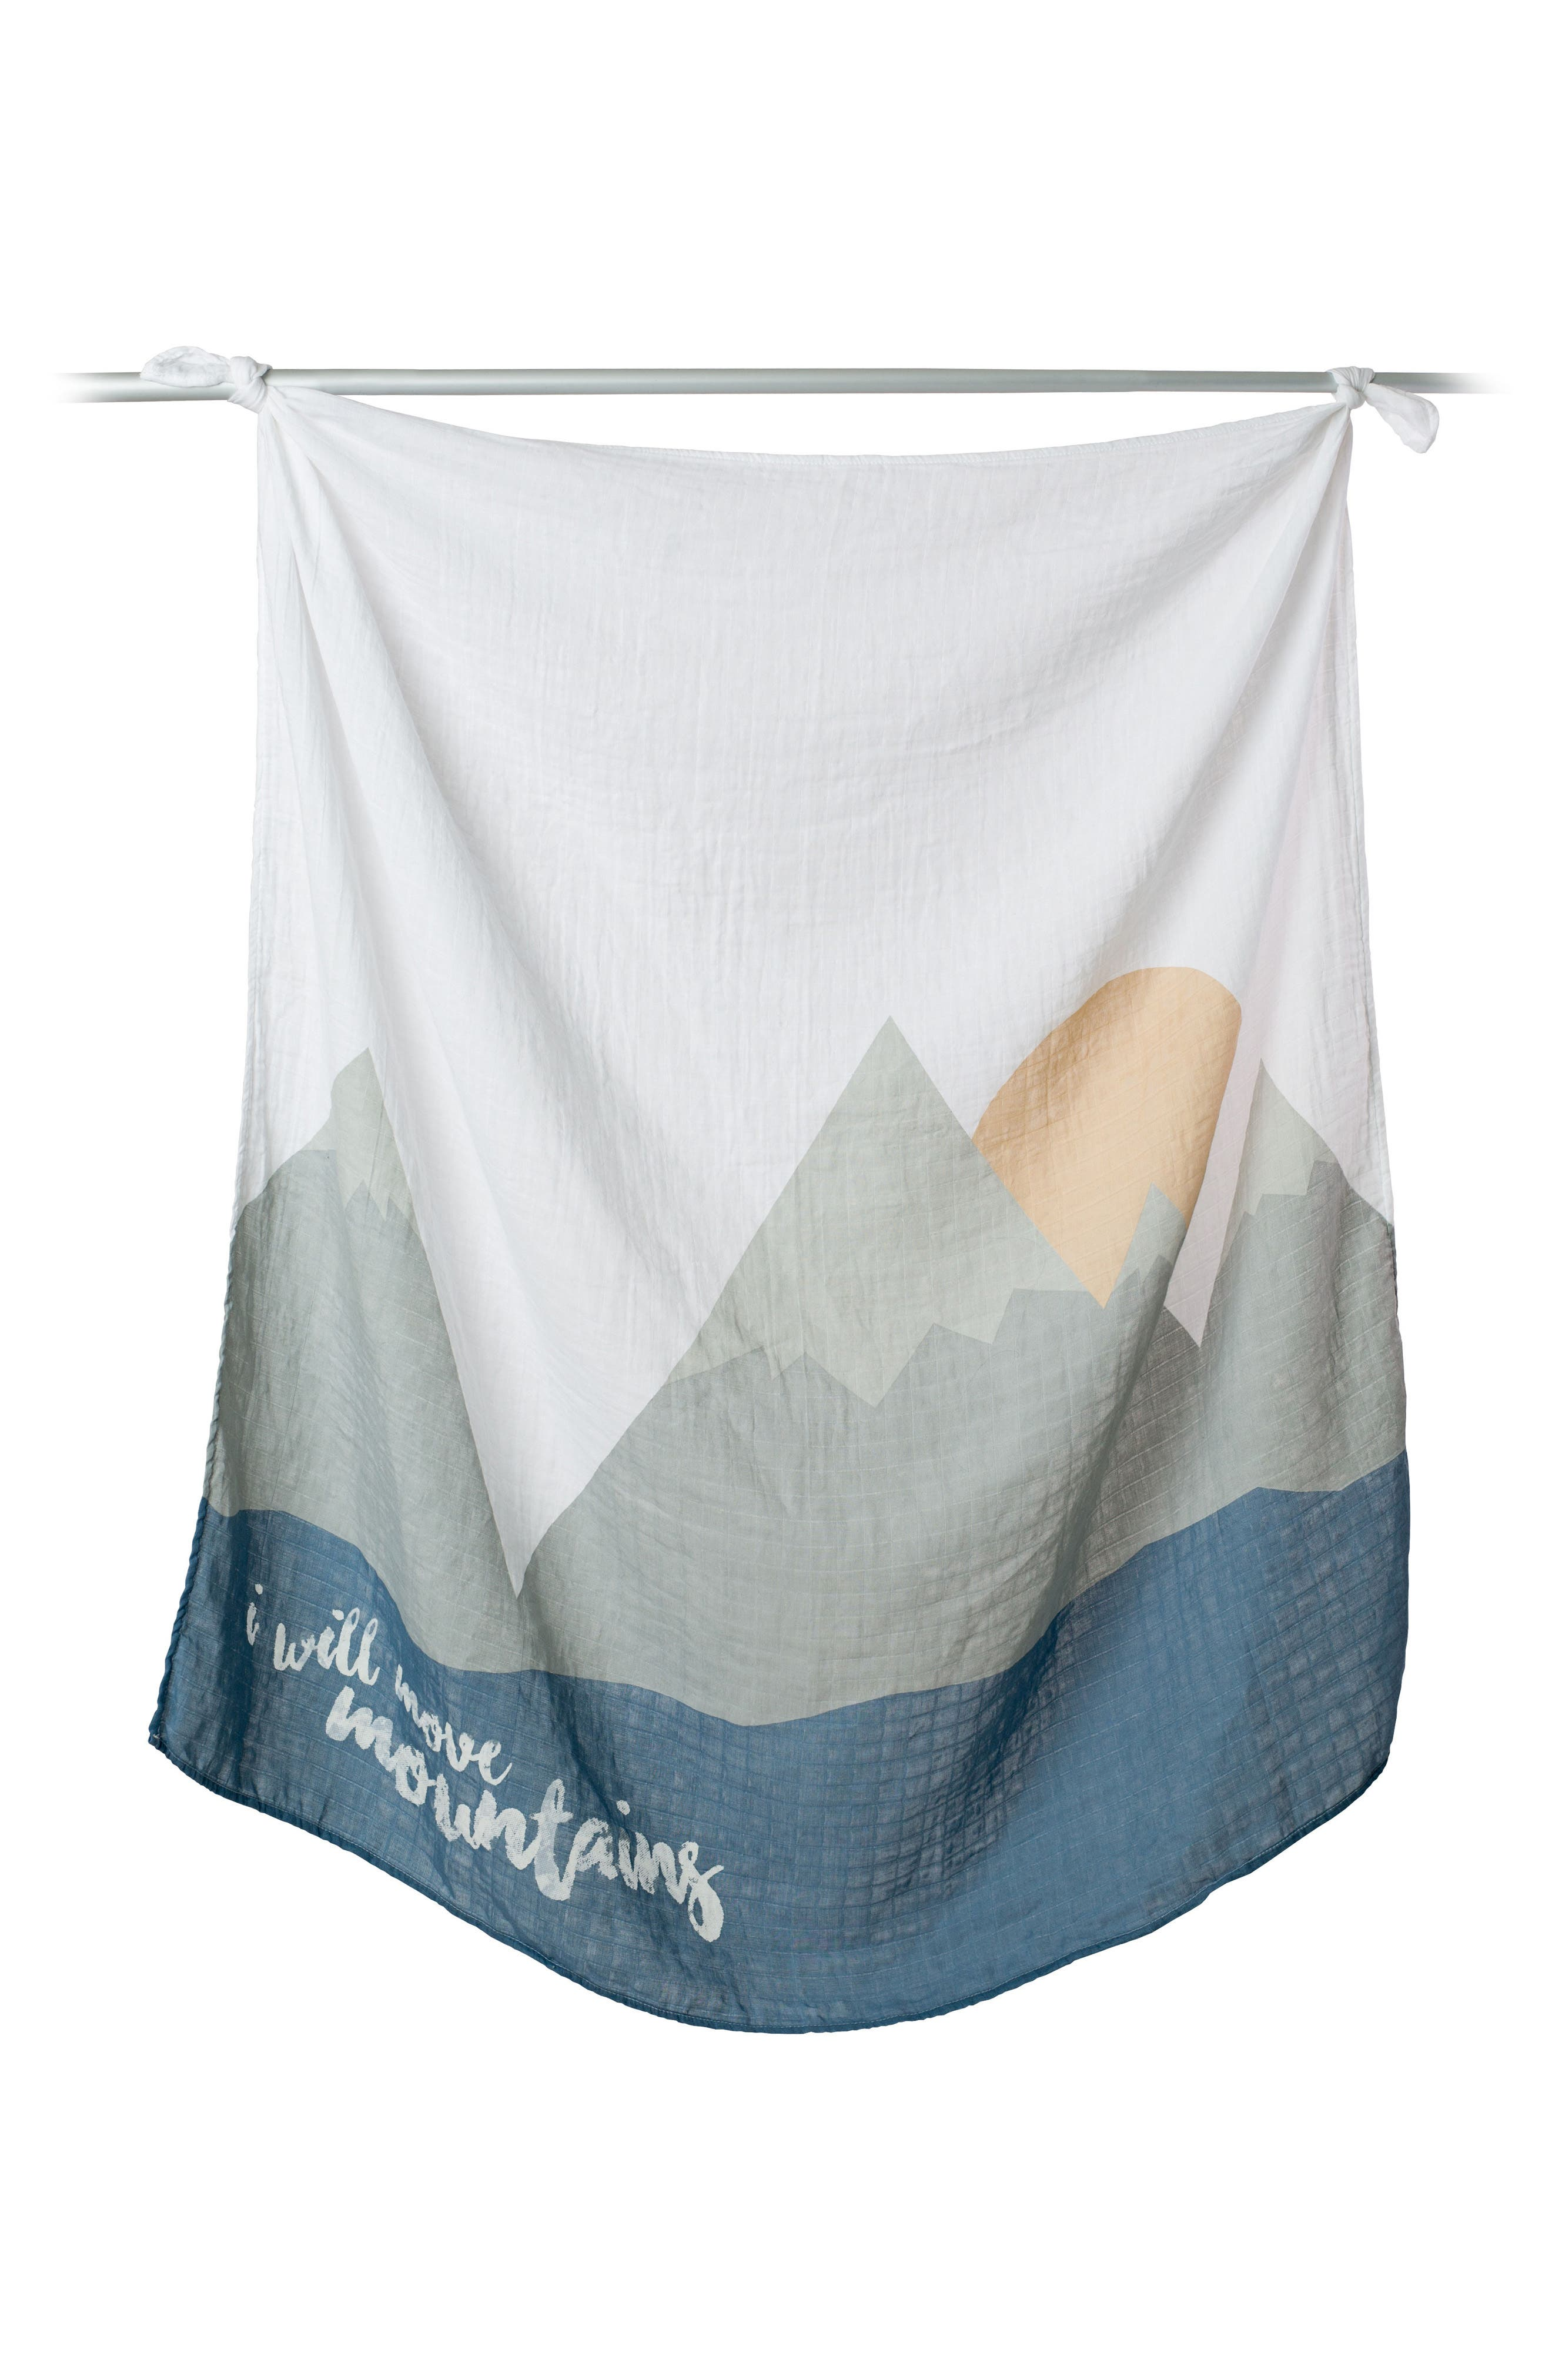 LULUJO, Baby's First Year - I Will Move Mountains Muslin Blanket & Milestone Card Set, Main thumbnail 1, color, WILL MOVE MOUNTAINS